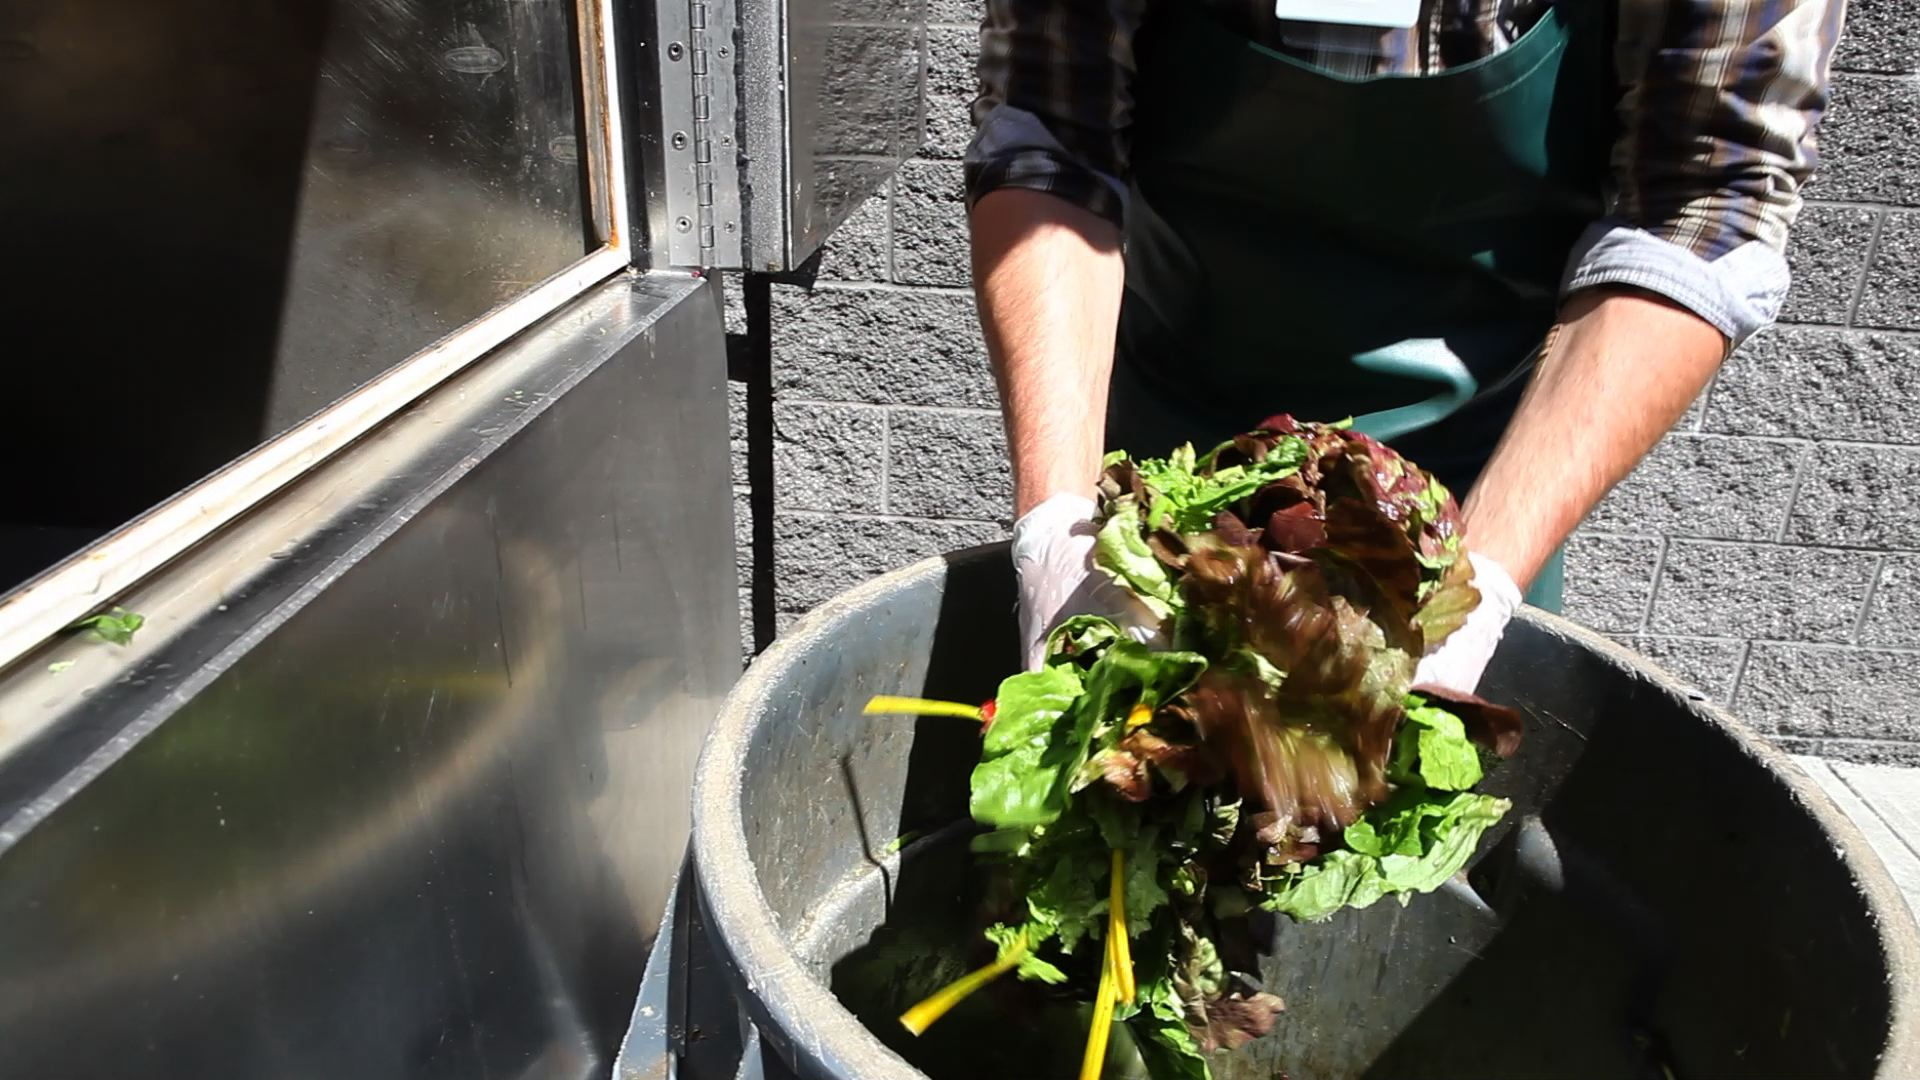 <p>Food waste can be turned into organic fertilizer. (Flickr/EarthFix)</p>